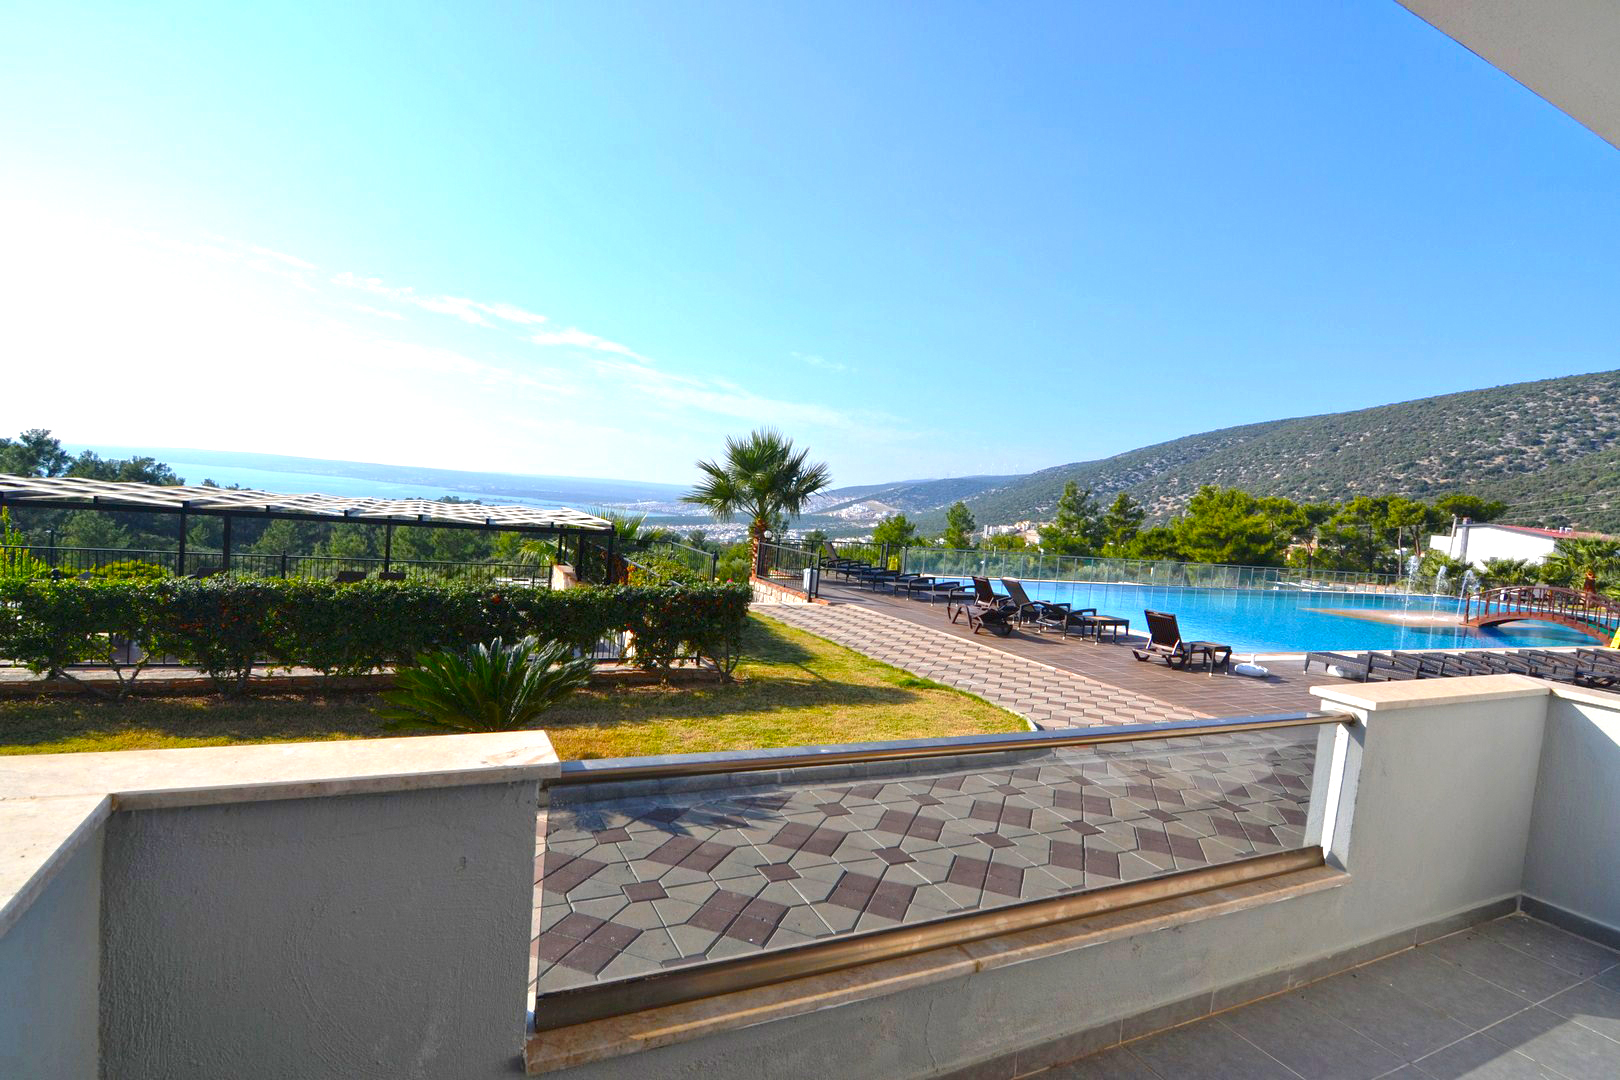 Akbük Tropicana Resort 3 Bed Apartment For Sale